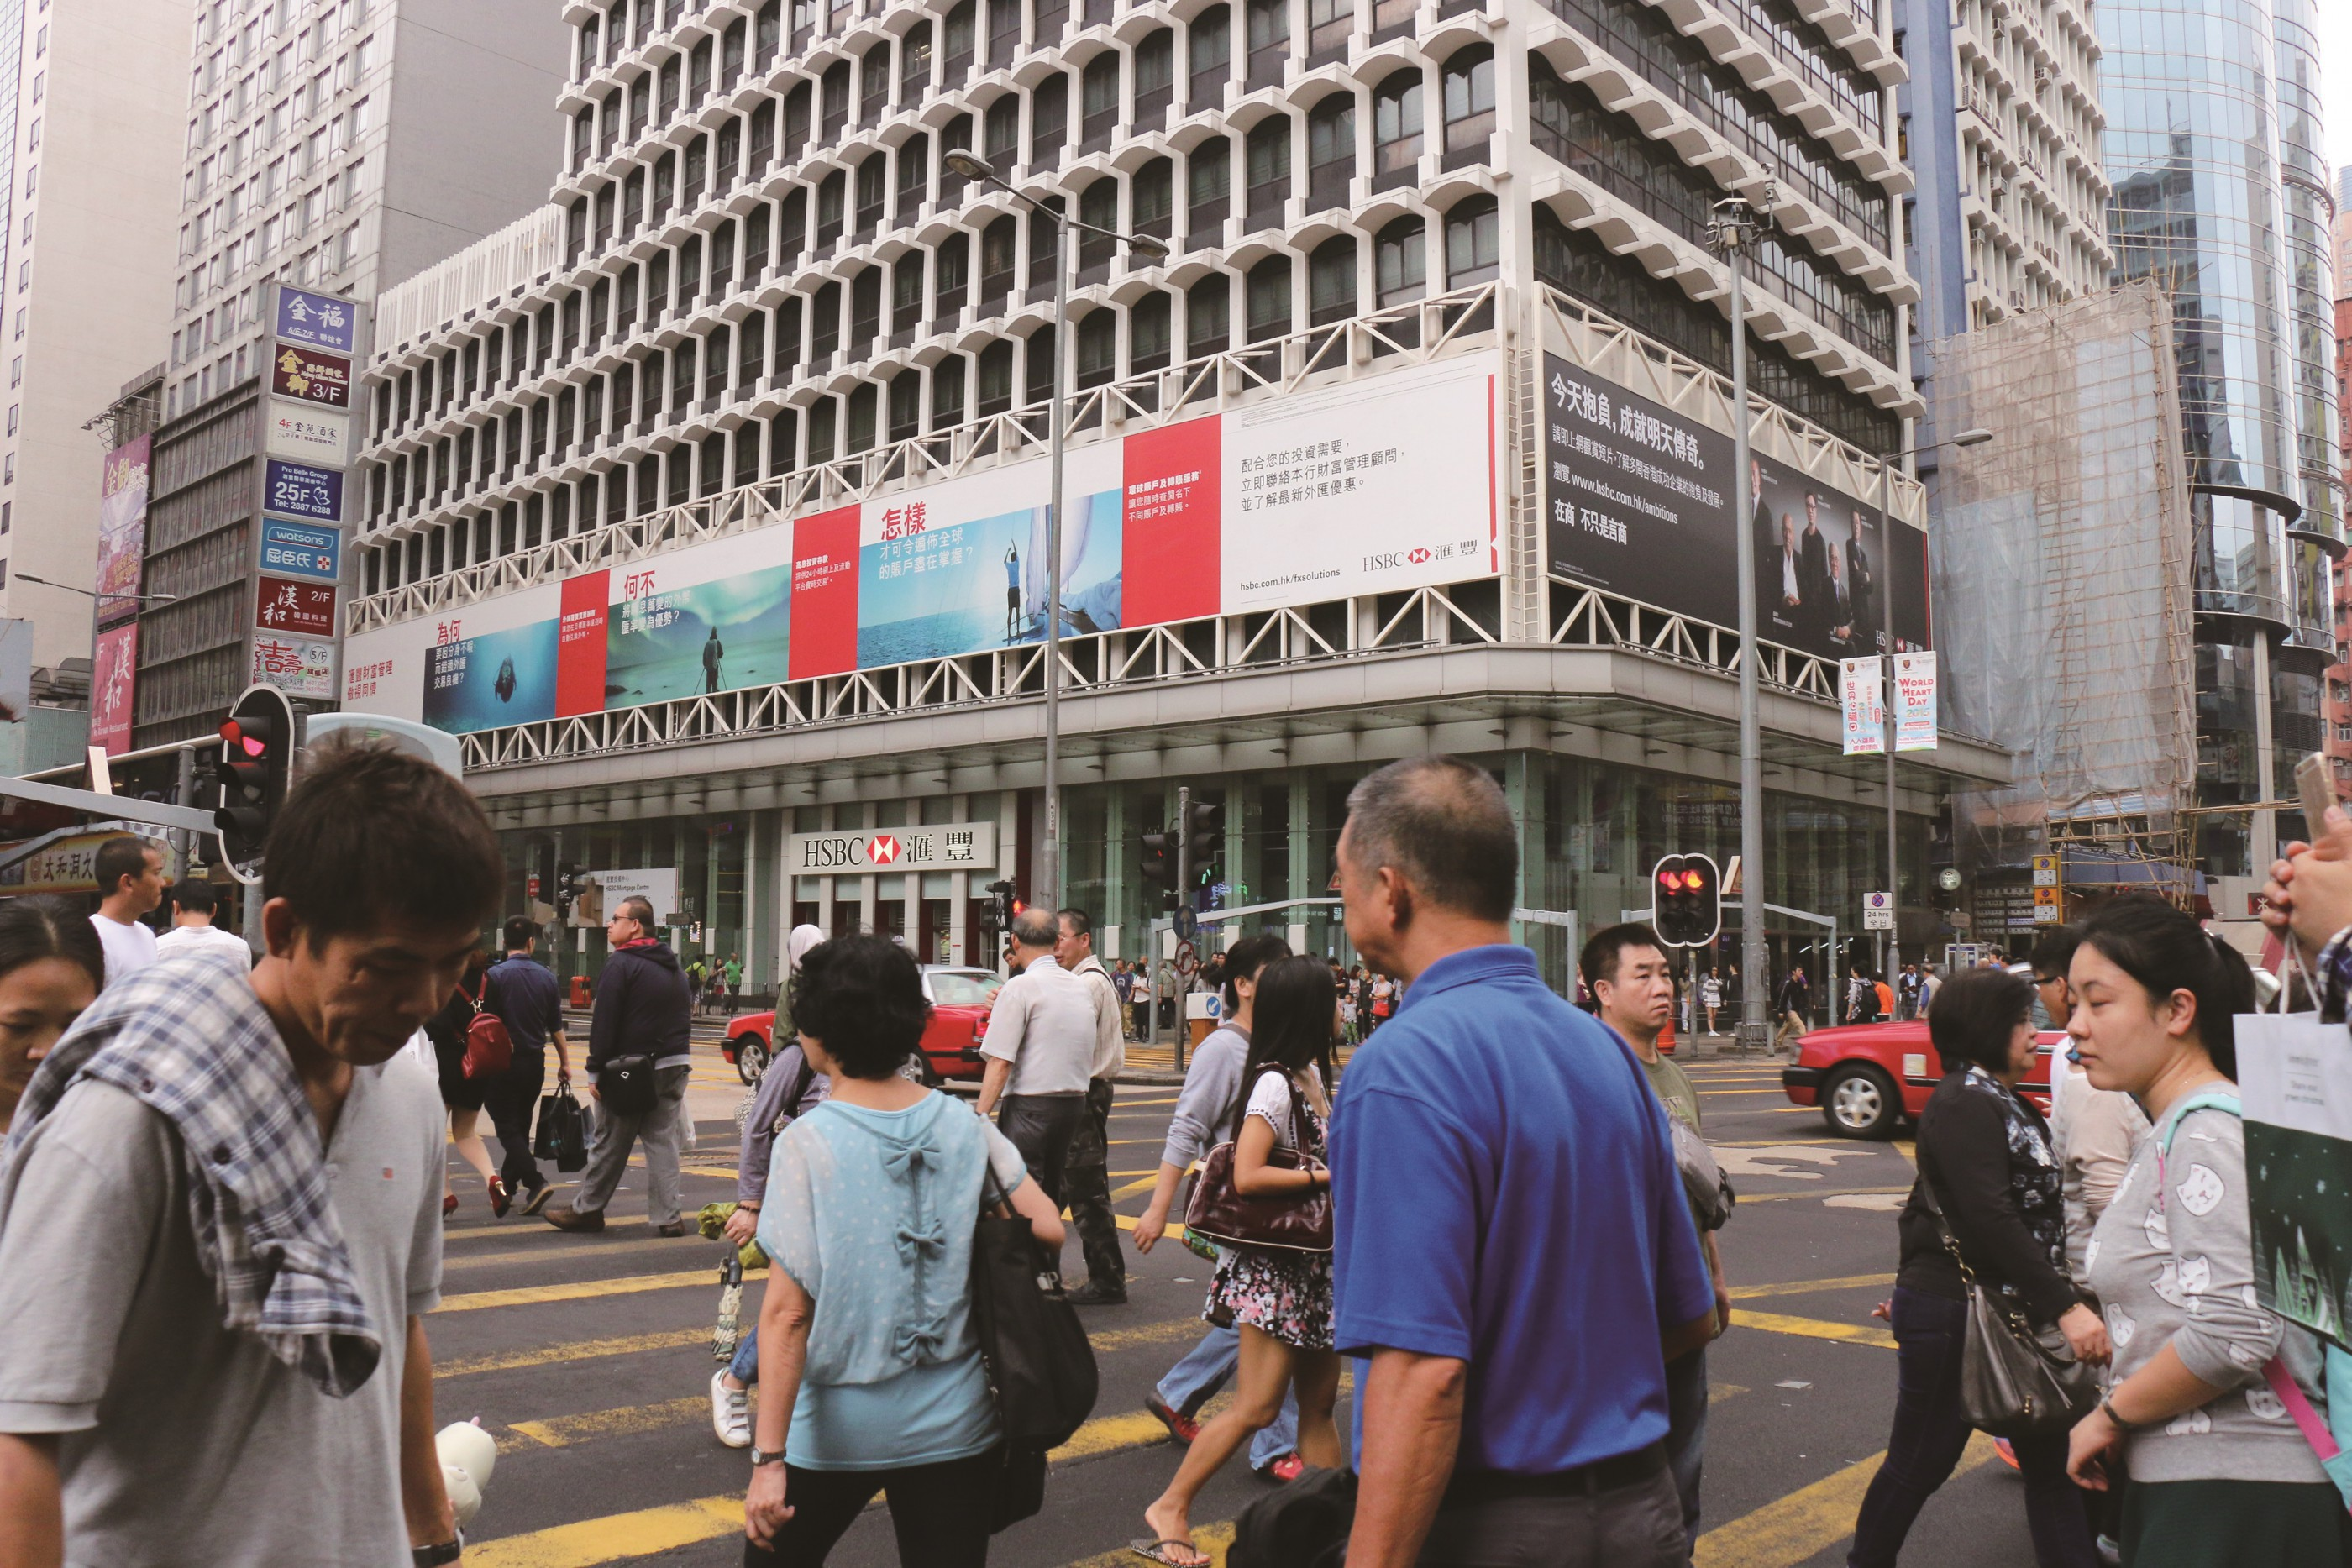 Hong Kong finance less interntional dependent on China